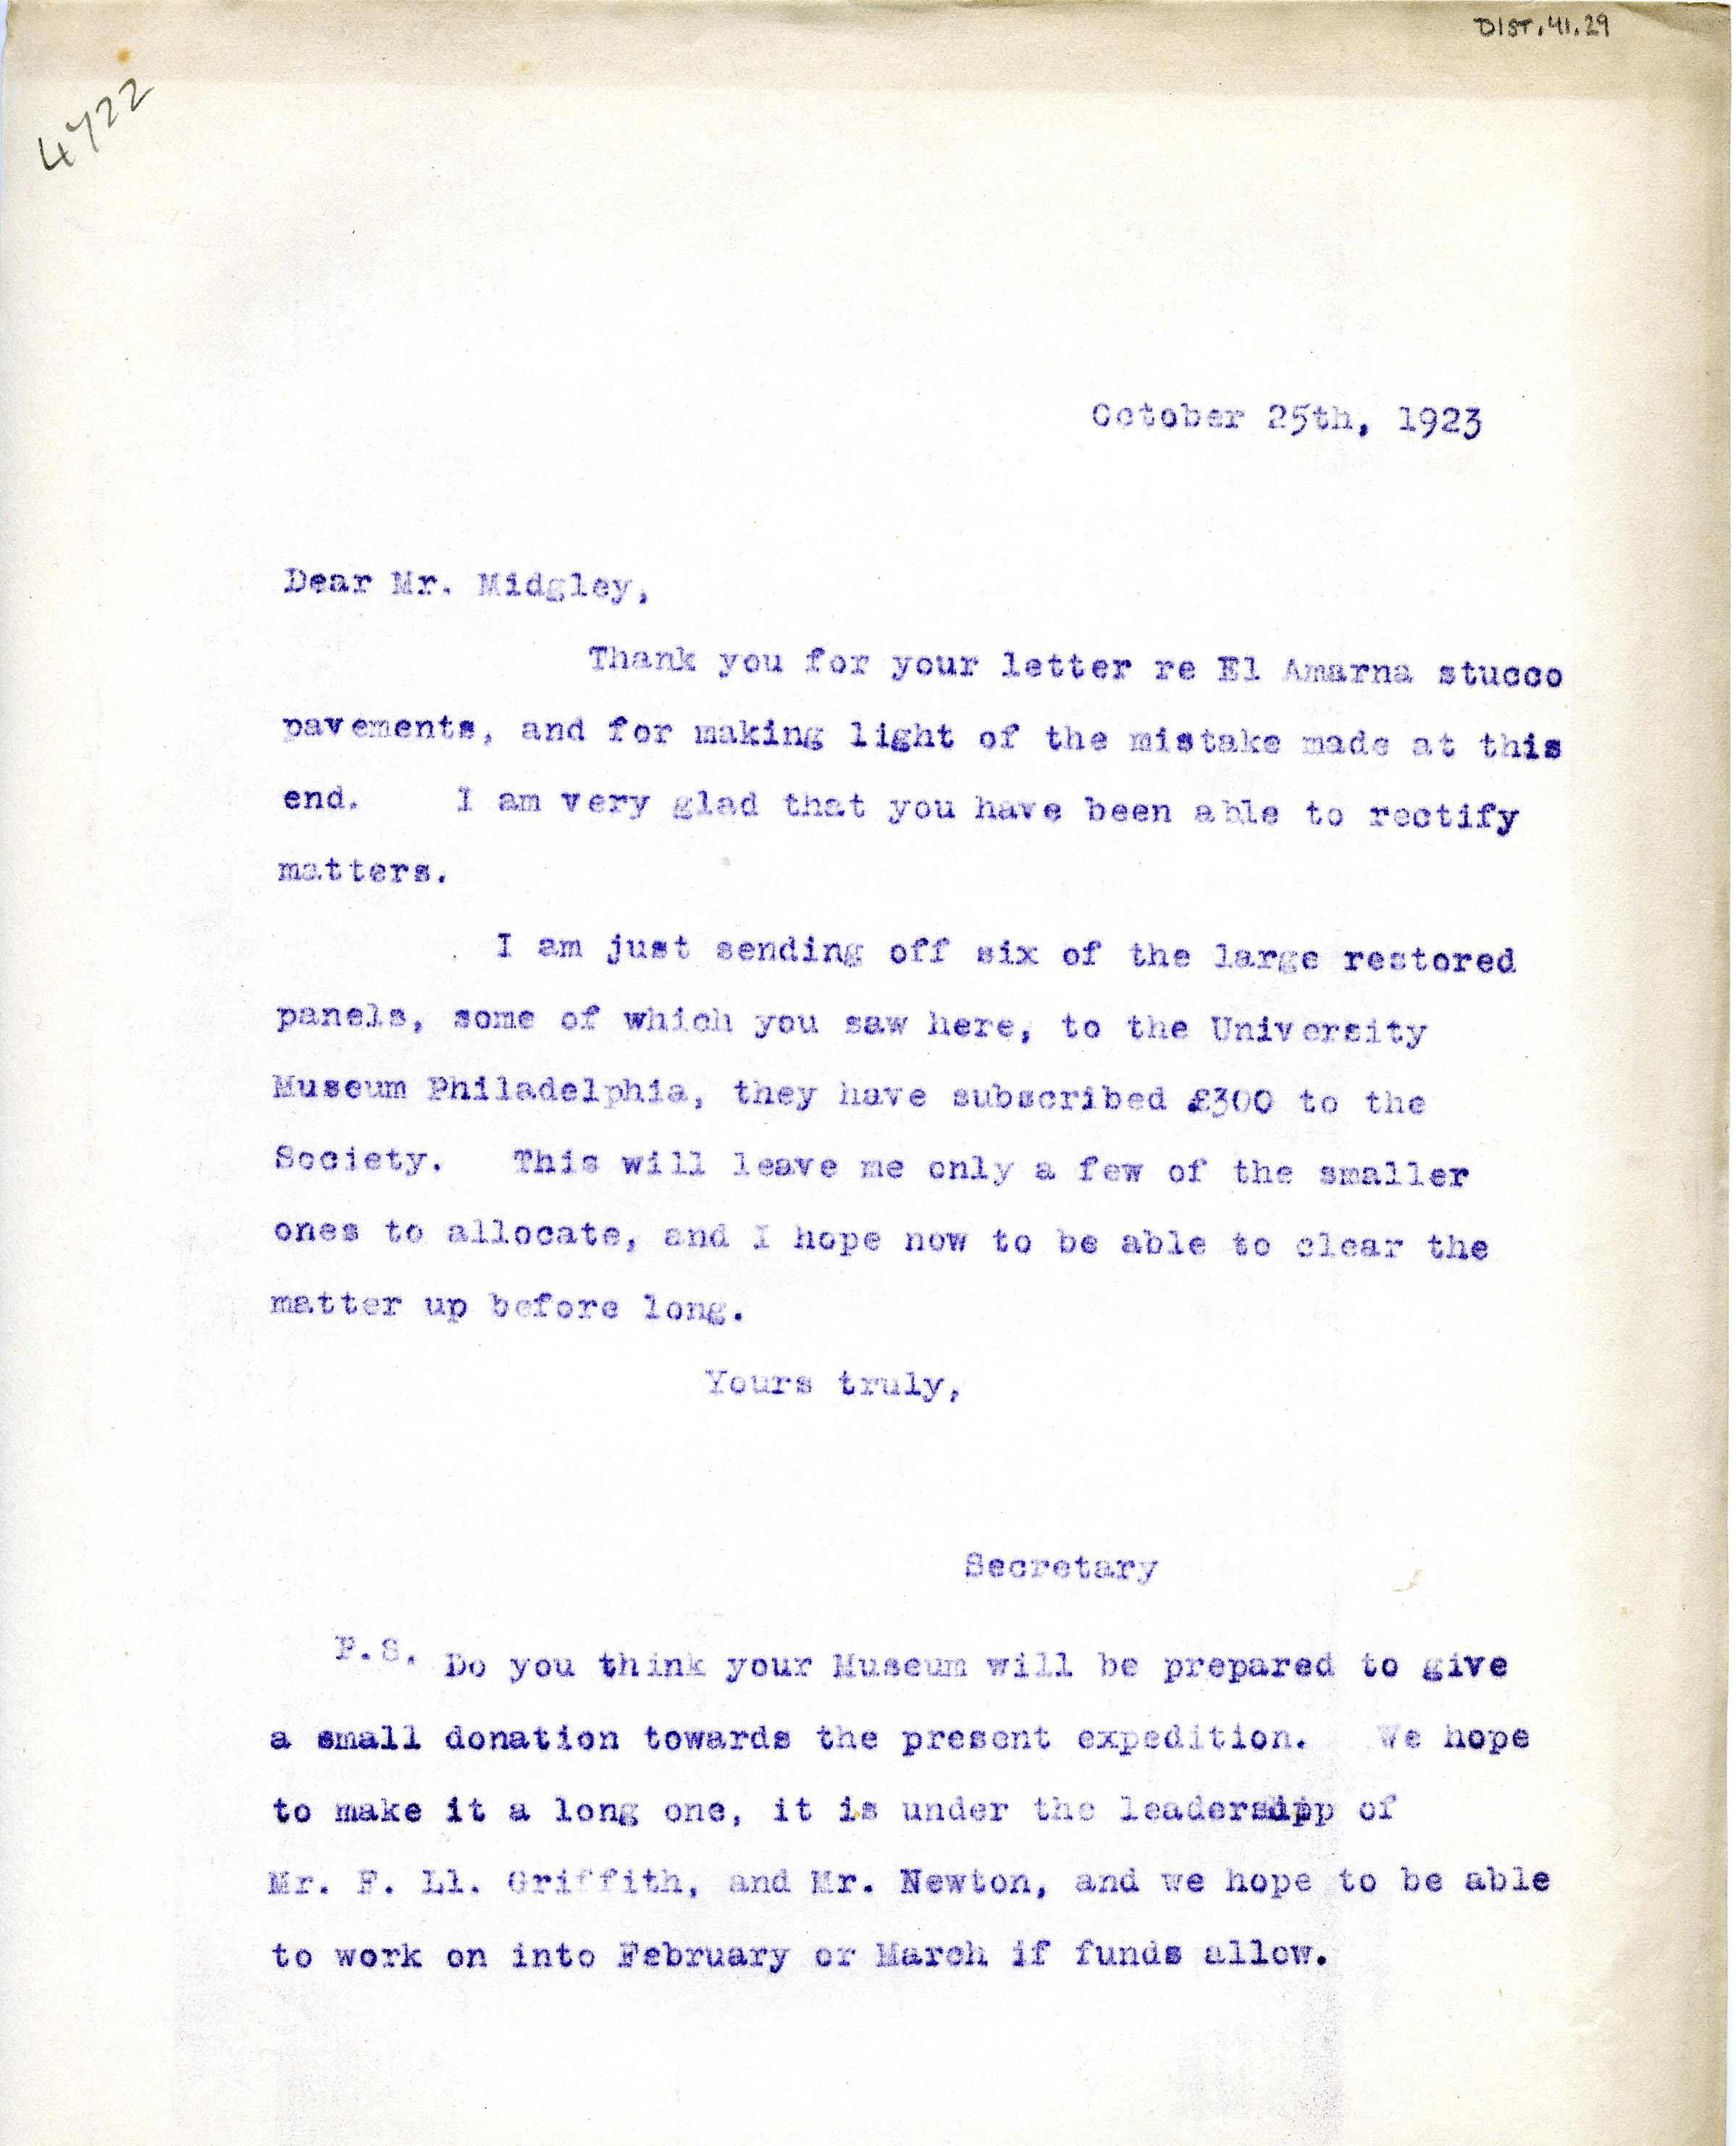 1922-76 Miscellaneous correspondence with museums DIST.41.29